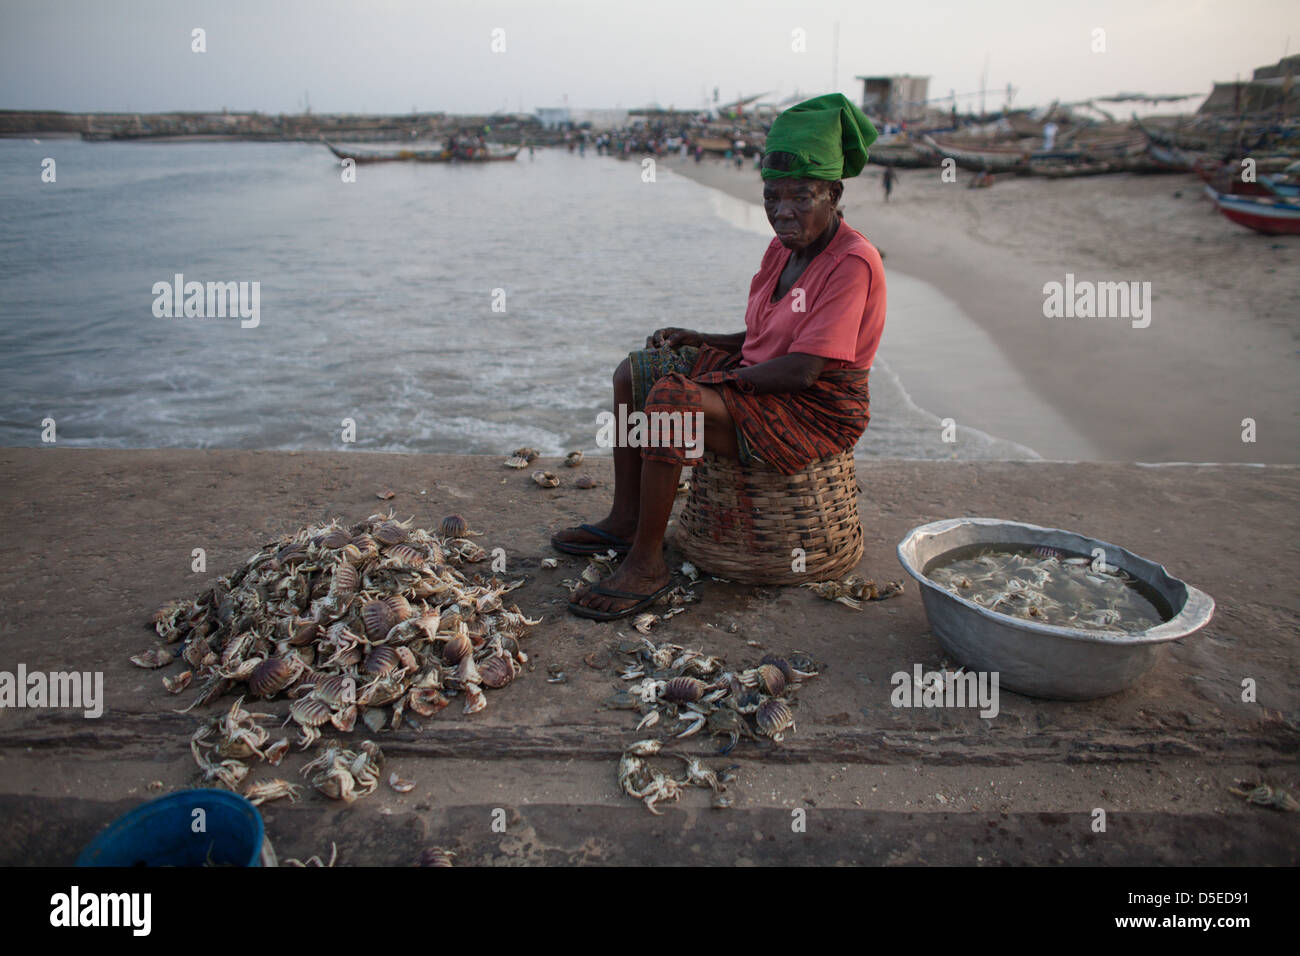 A woman cleans crabs in Accra, Ghana. - Stock Image